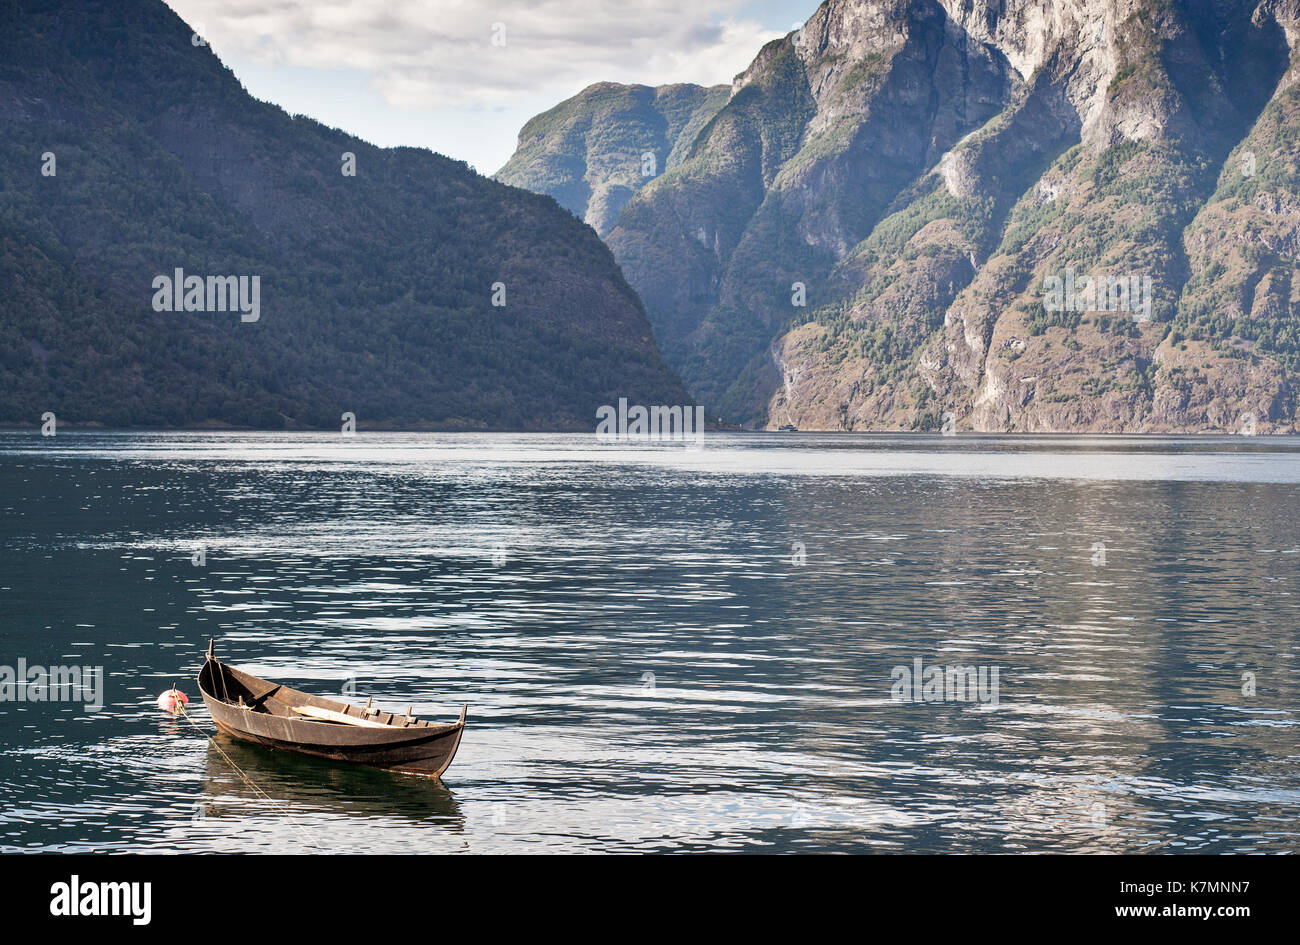 Car ferries sognefjord norway - Aurland Sognefjord Norway Little Wooden Boat Stock Image